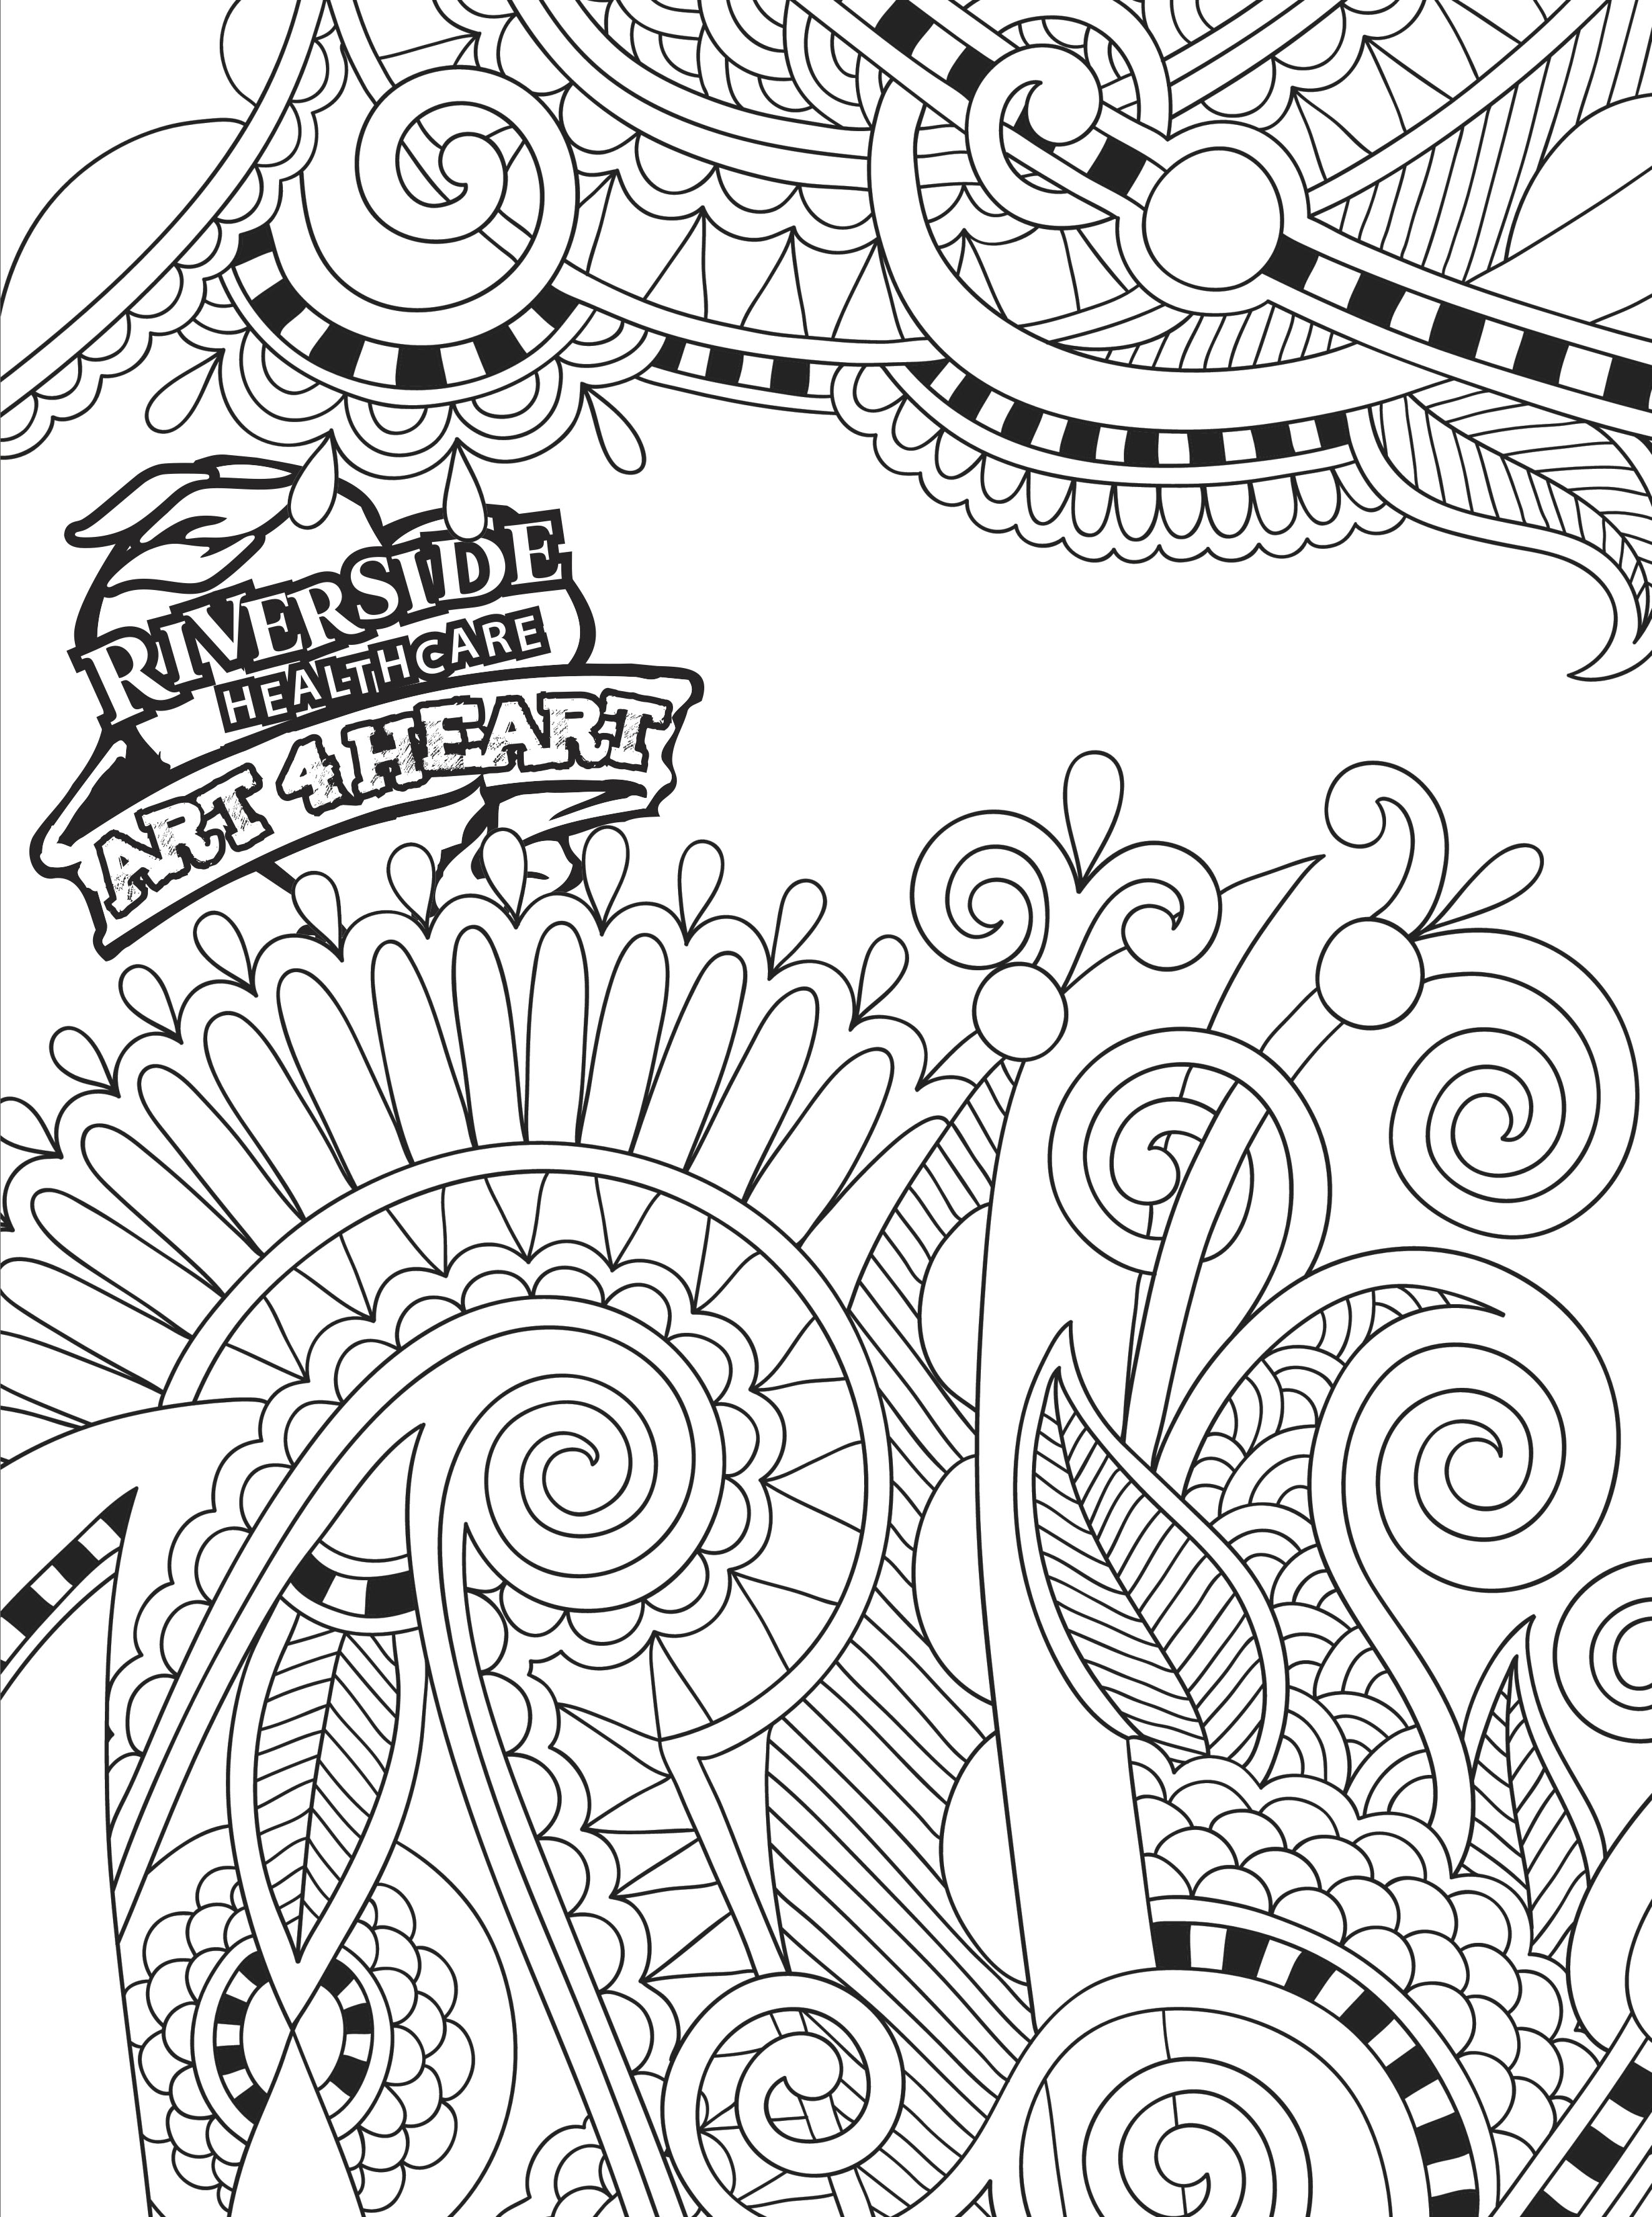 coloring pages for print healthcurrents printable coloring pages pages print coloring for